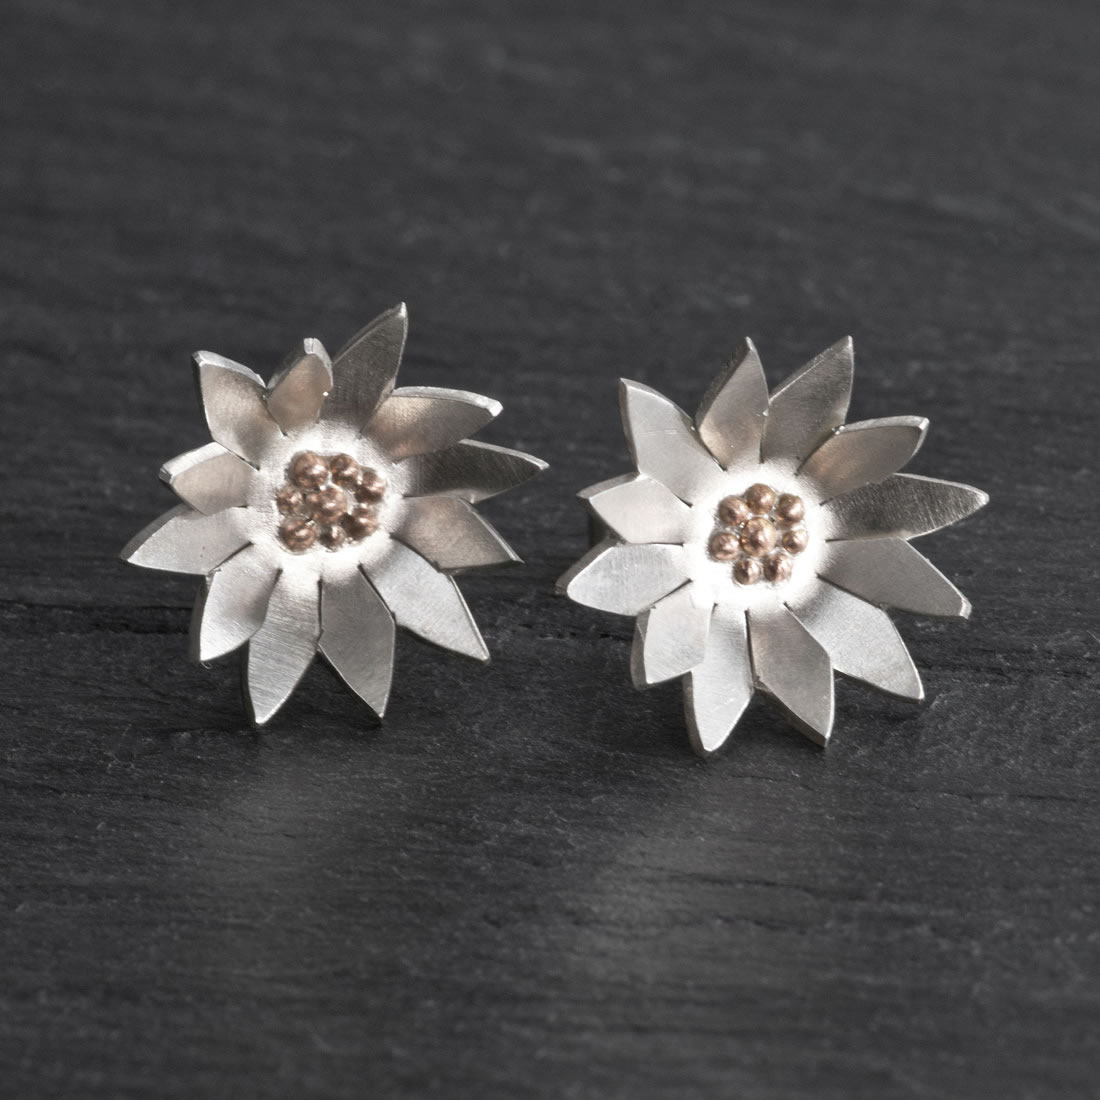 Botanicals Argentium Silver with 18ct Yellow Gold Campanula StudsBotanicals Argentium Silver with 9ct Rose Gold Daisy Studs